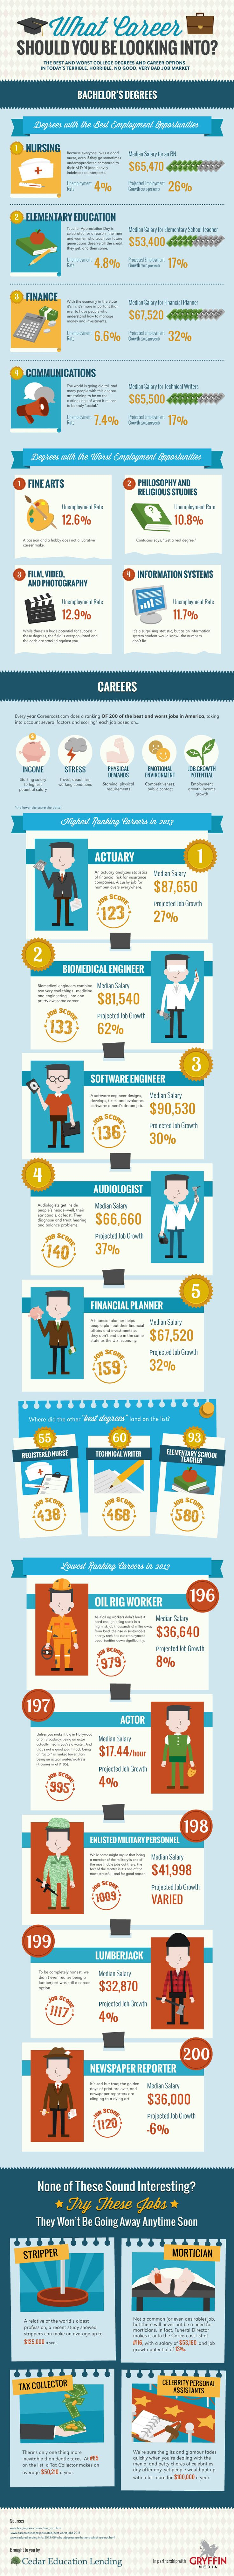 Finding the right career involves a lot of trial-and-error and research. The decsisions you make impact your career in many ways; income, stress, happiness, etc.Based on the research front, take a look at this info graphic highlighting the best and worst careers, according to salary, and projected job growth..